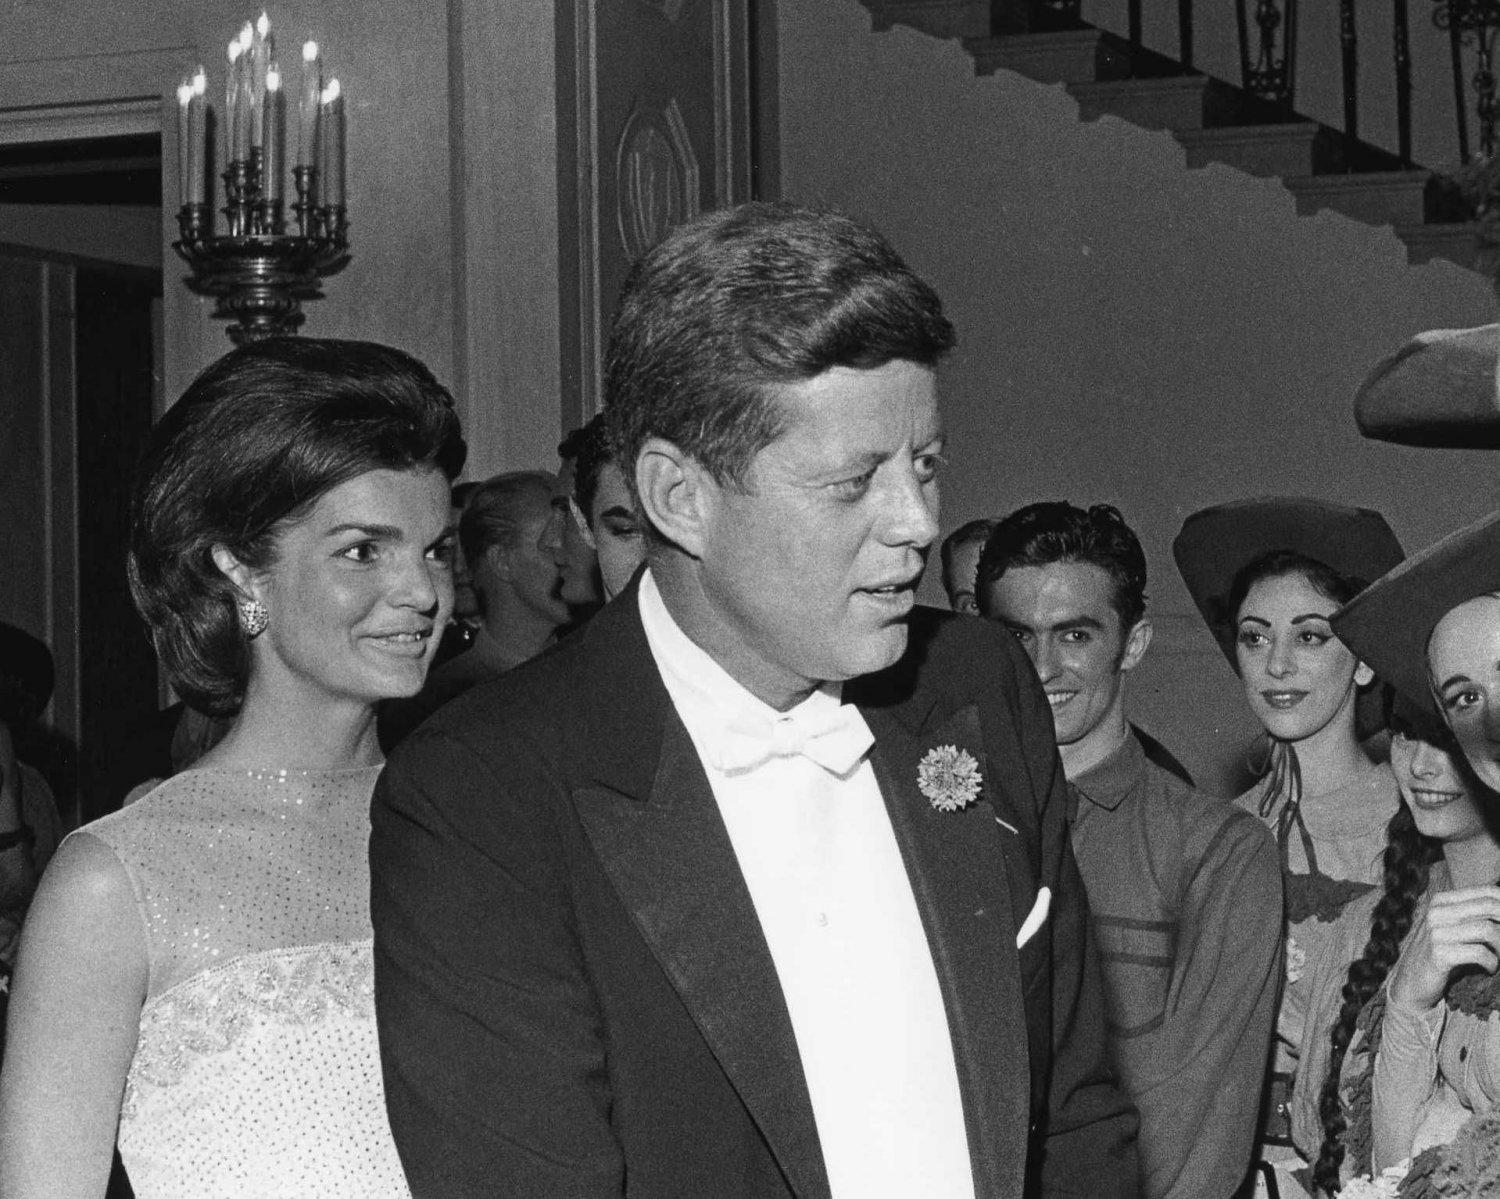 PRESIDENT JOHN F. KENNEDY WITH JACKIE DURING FORMAL EVENING 8X10 PHOTO (AA-237)